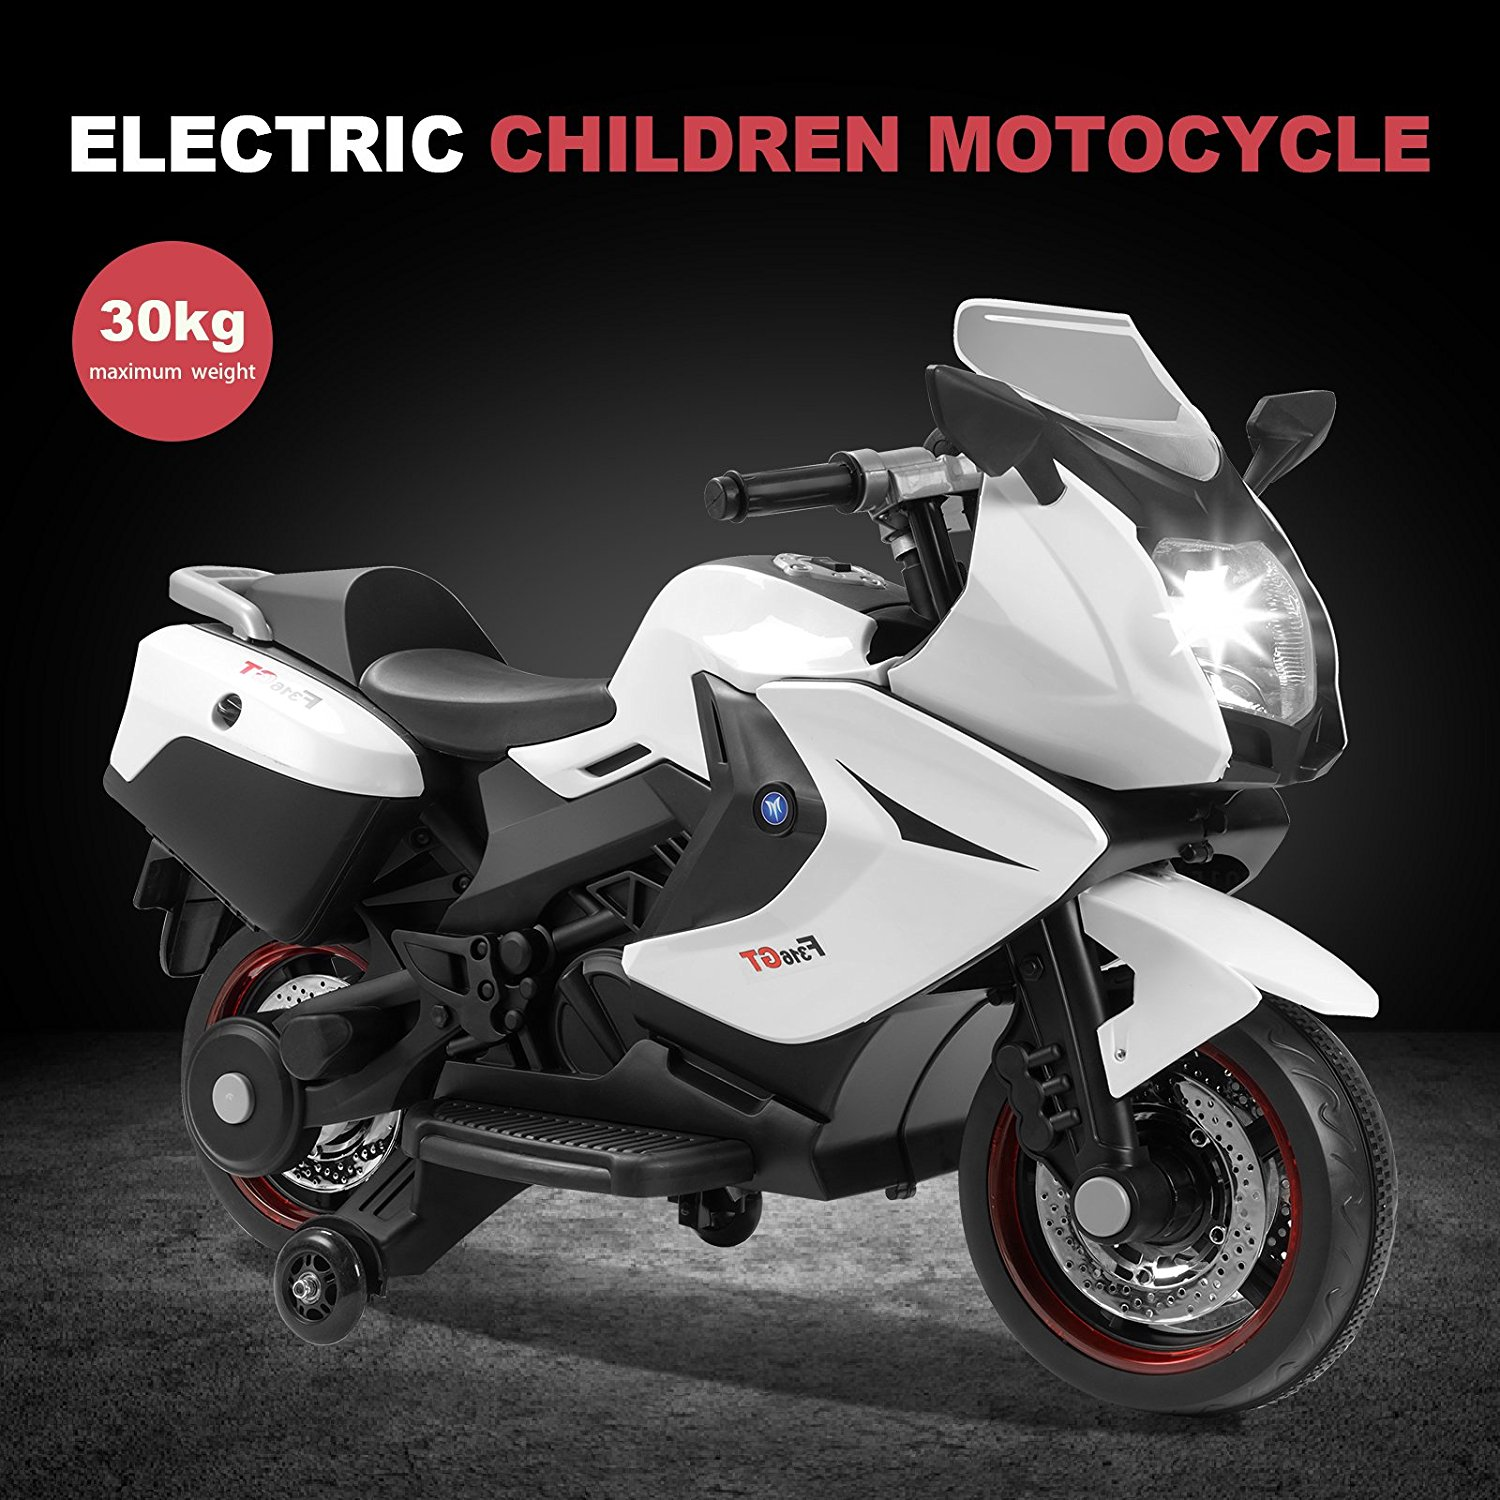 Kids Ride on Motorcycle 12V Toy Battery Powered Electric 2 Wheels Remote Control by Uenjoy